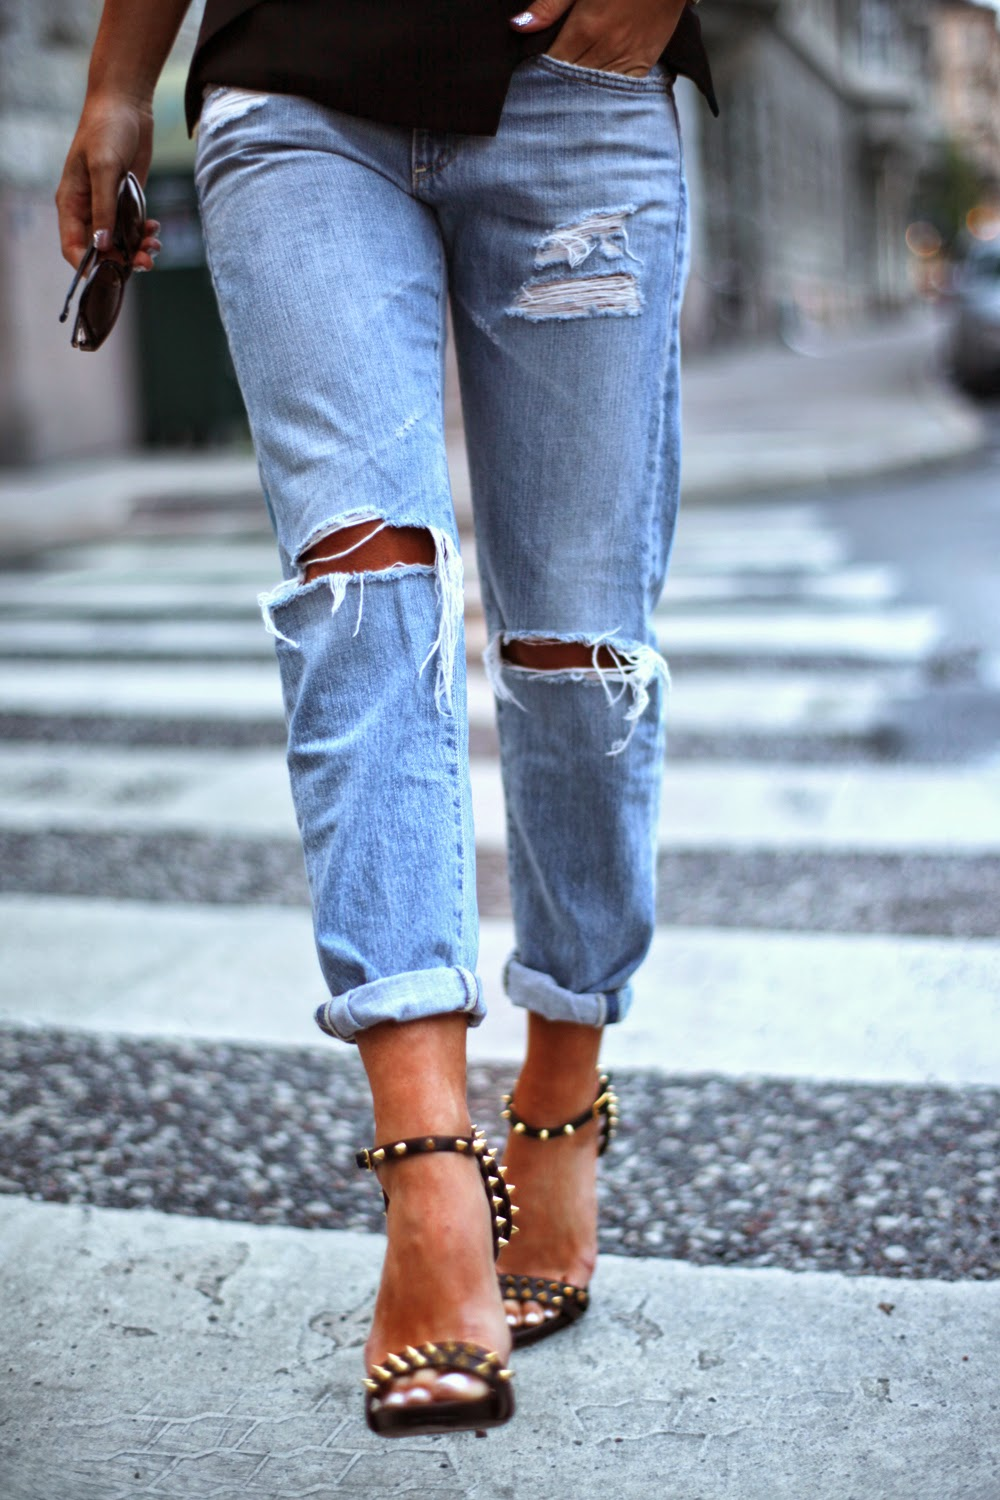 """WOMEN'S BOYFRIEND JEANS Women's boyfriend jeans are the ultimate """"his for her"""" style. From ® Original to our relaxed-chic essentials, Levi's® is the go-to for boyfriend jeans for women. From clean & classic denim to custom-inspired designs, we've got boyfriend jeans for whatever her style is."""